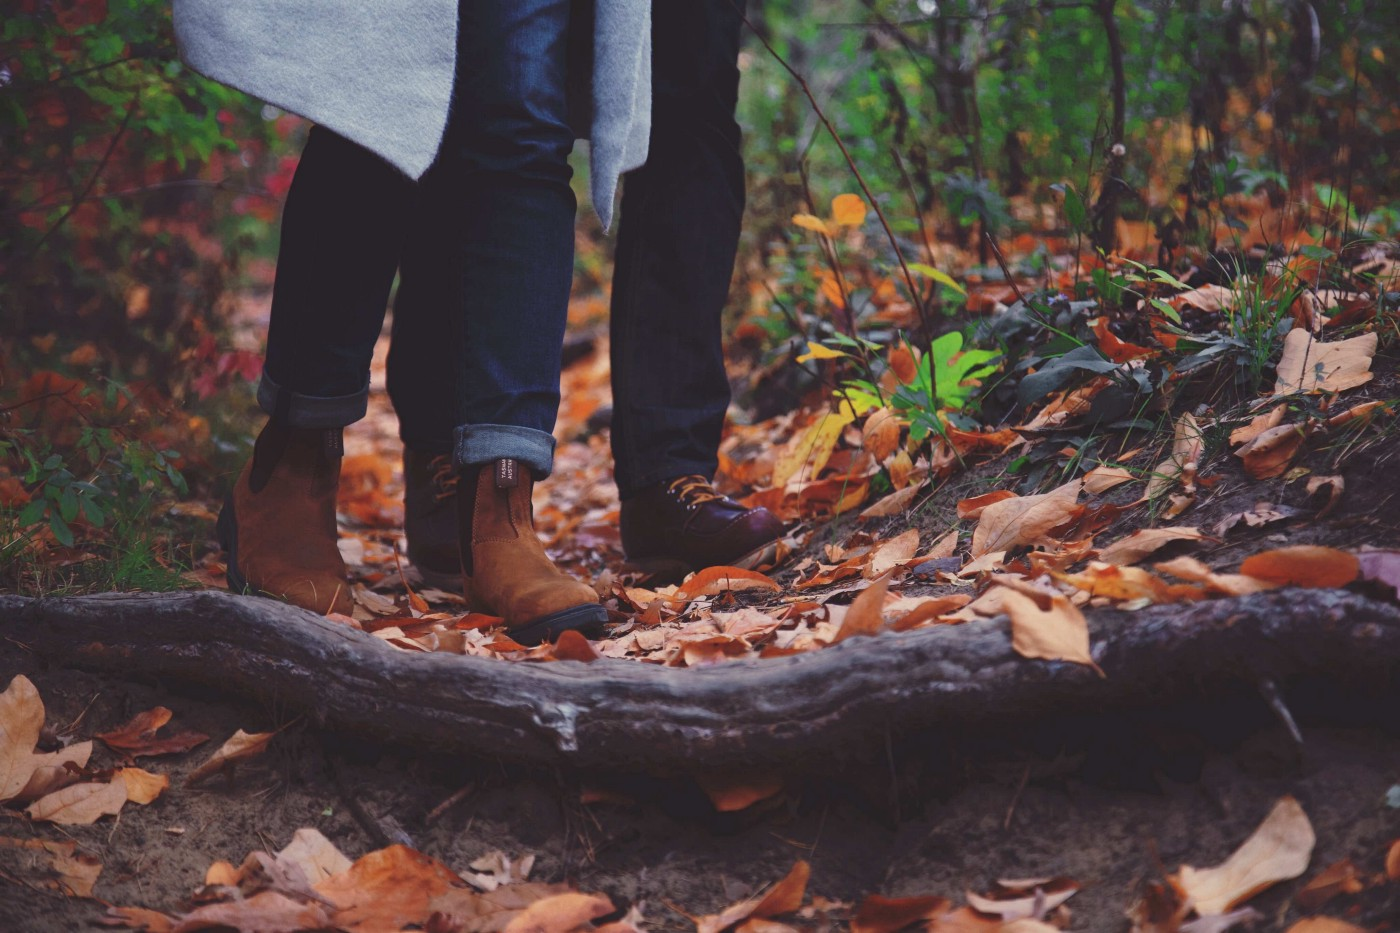 two pairs of boots, walking together in the forest